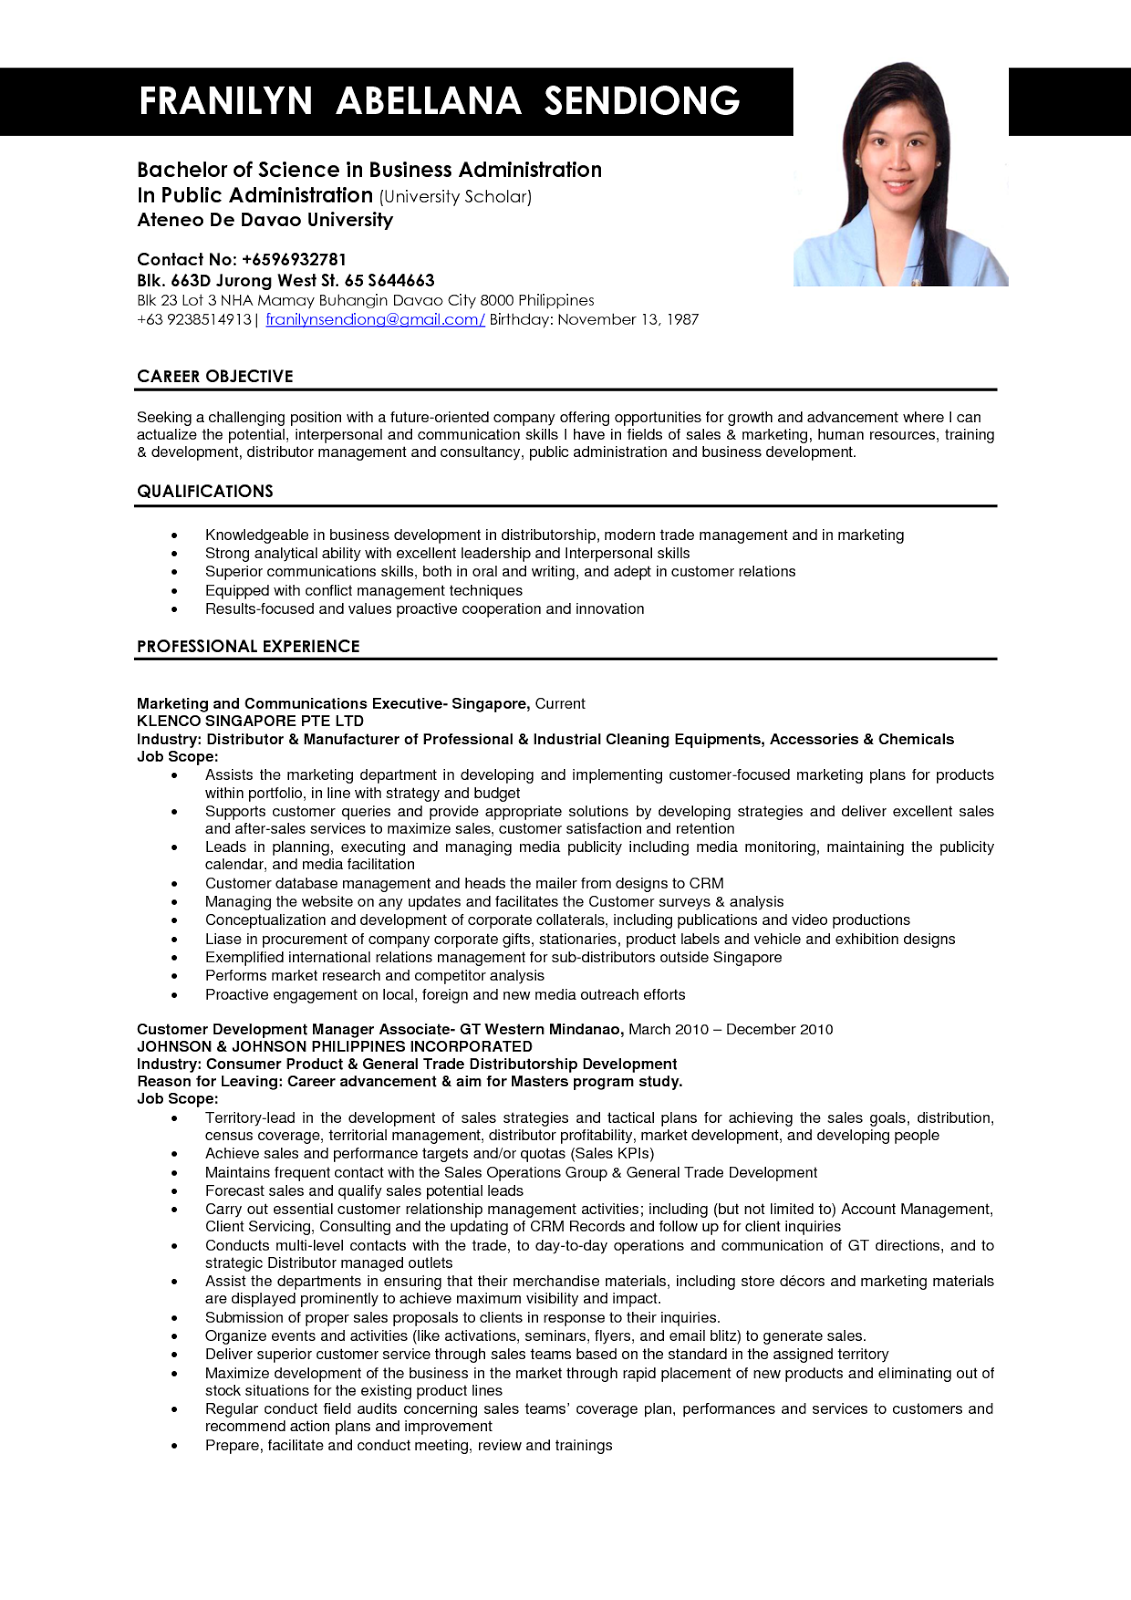 The example of resume